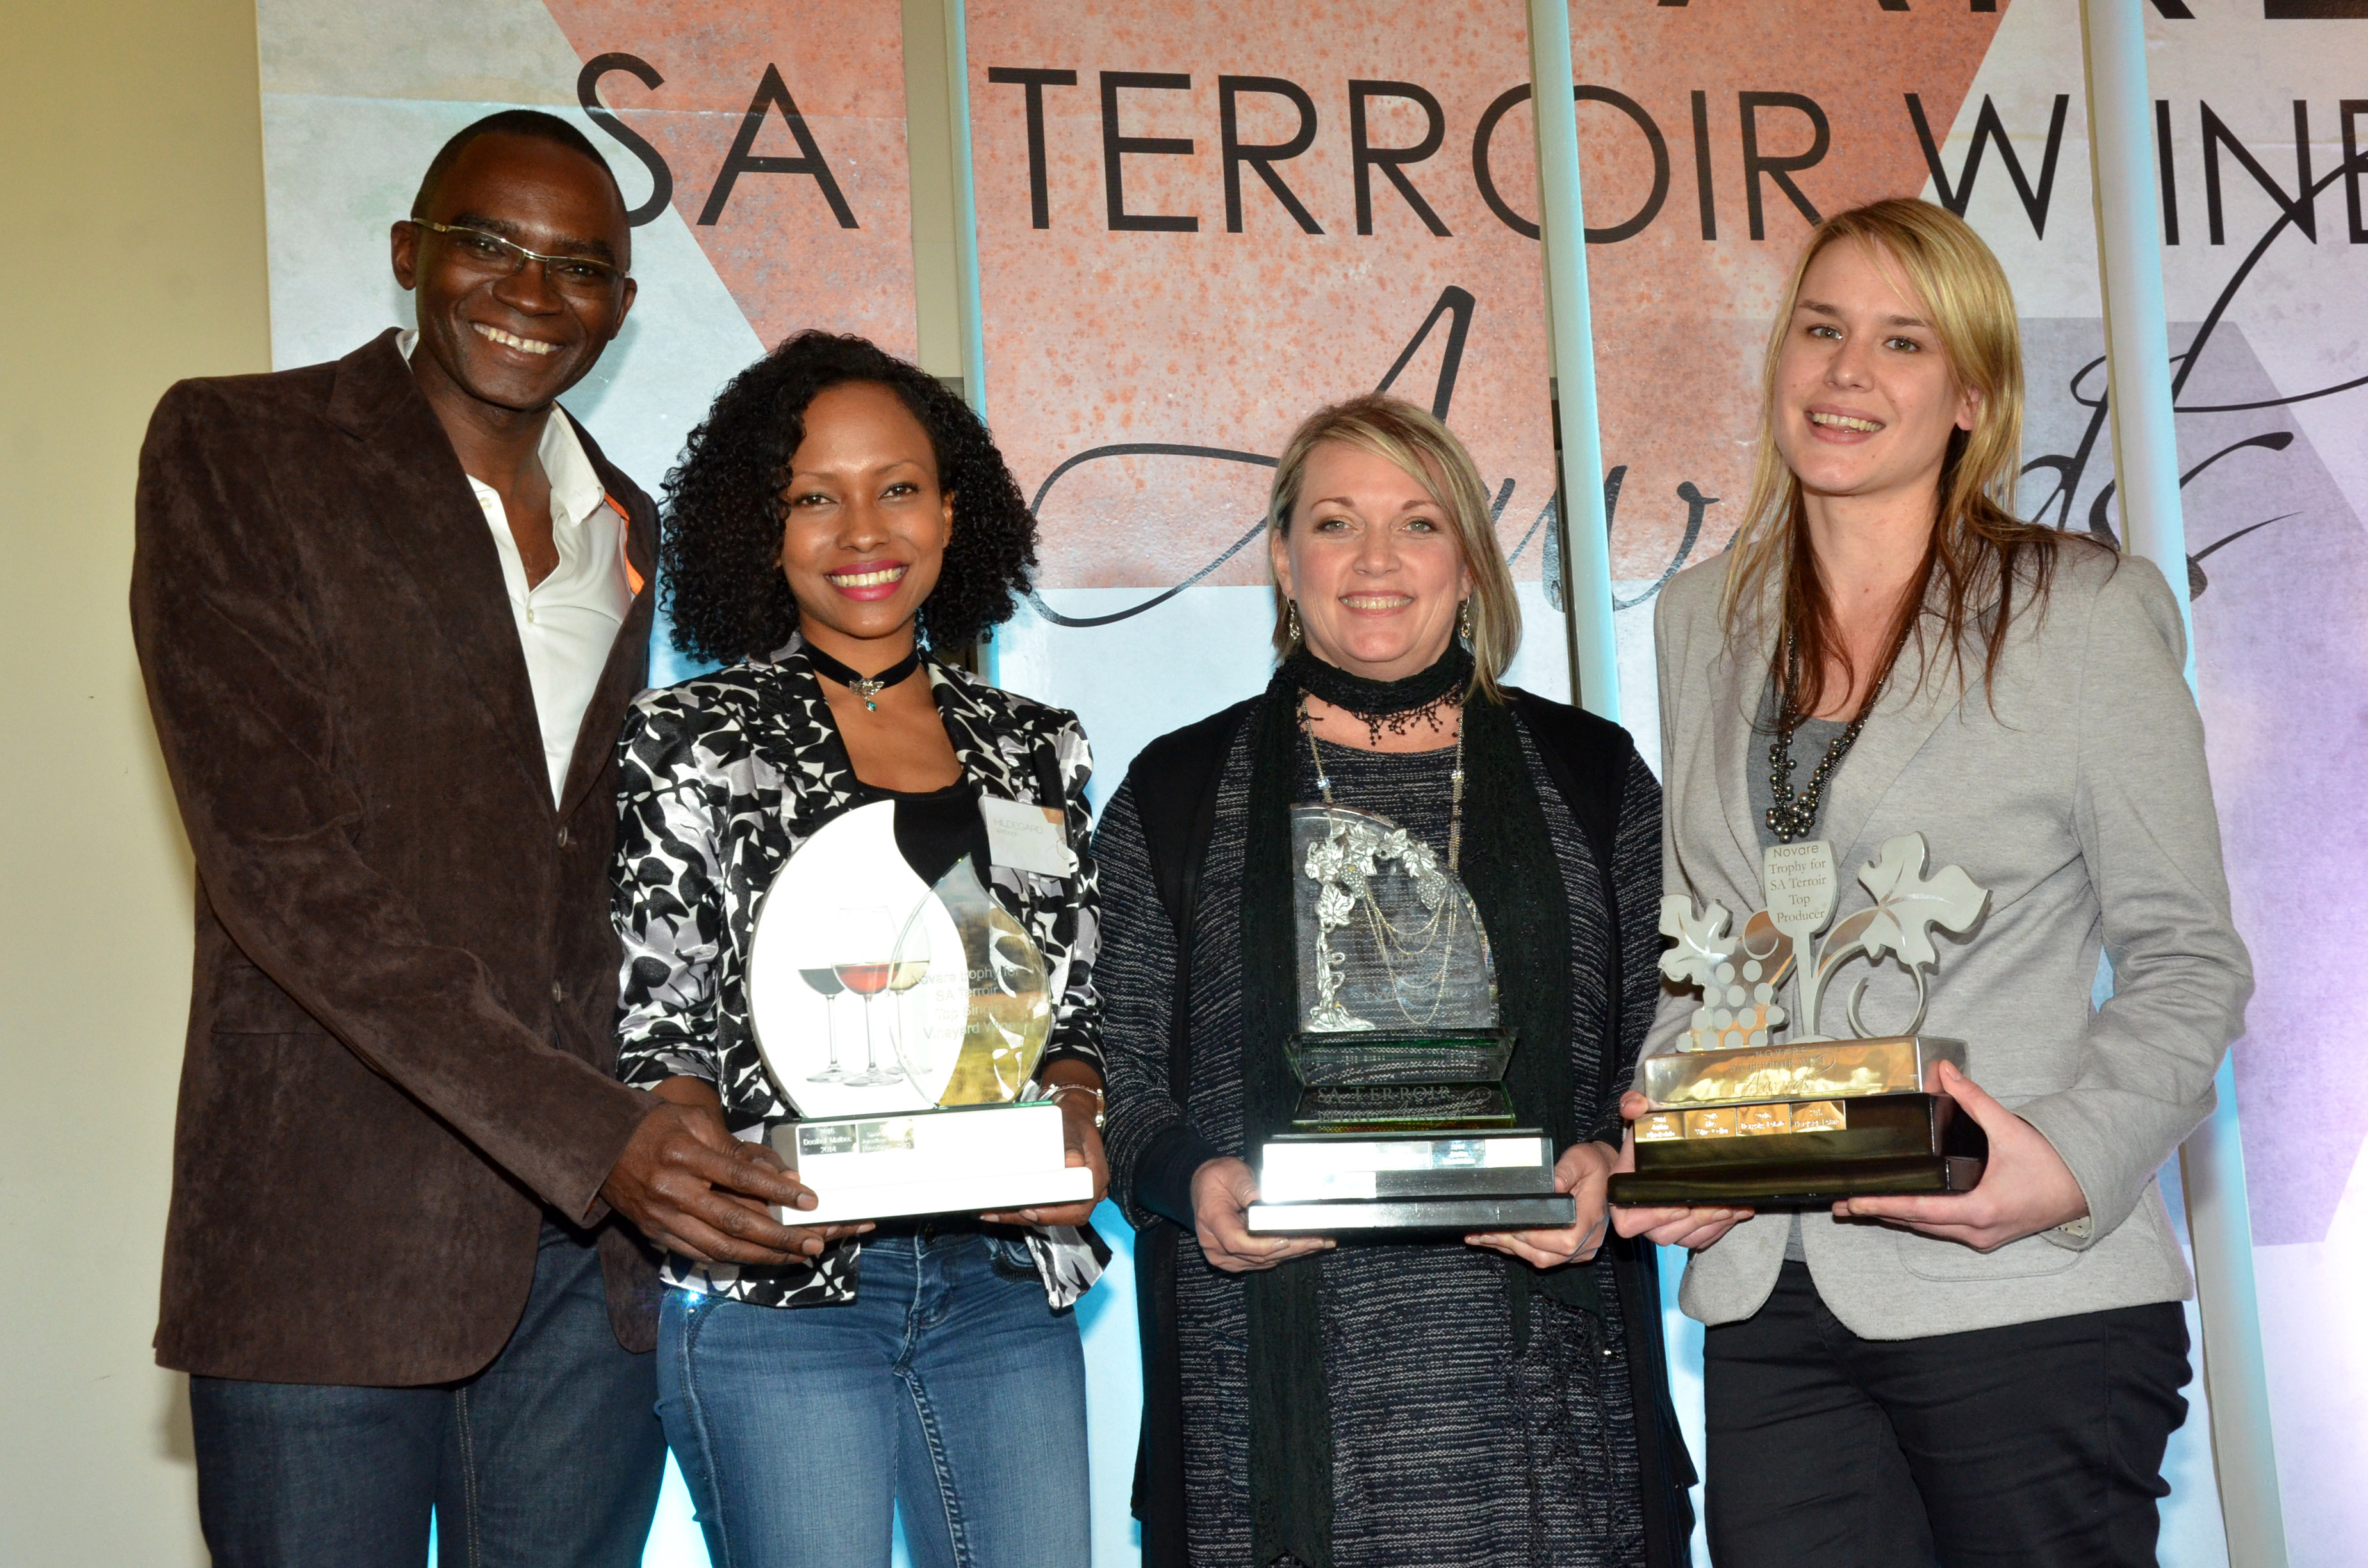 Bergsig Estate Wins Big At Terrior Wine Awards photo